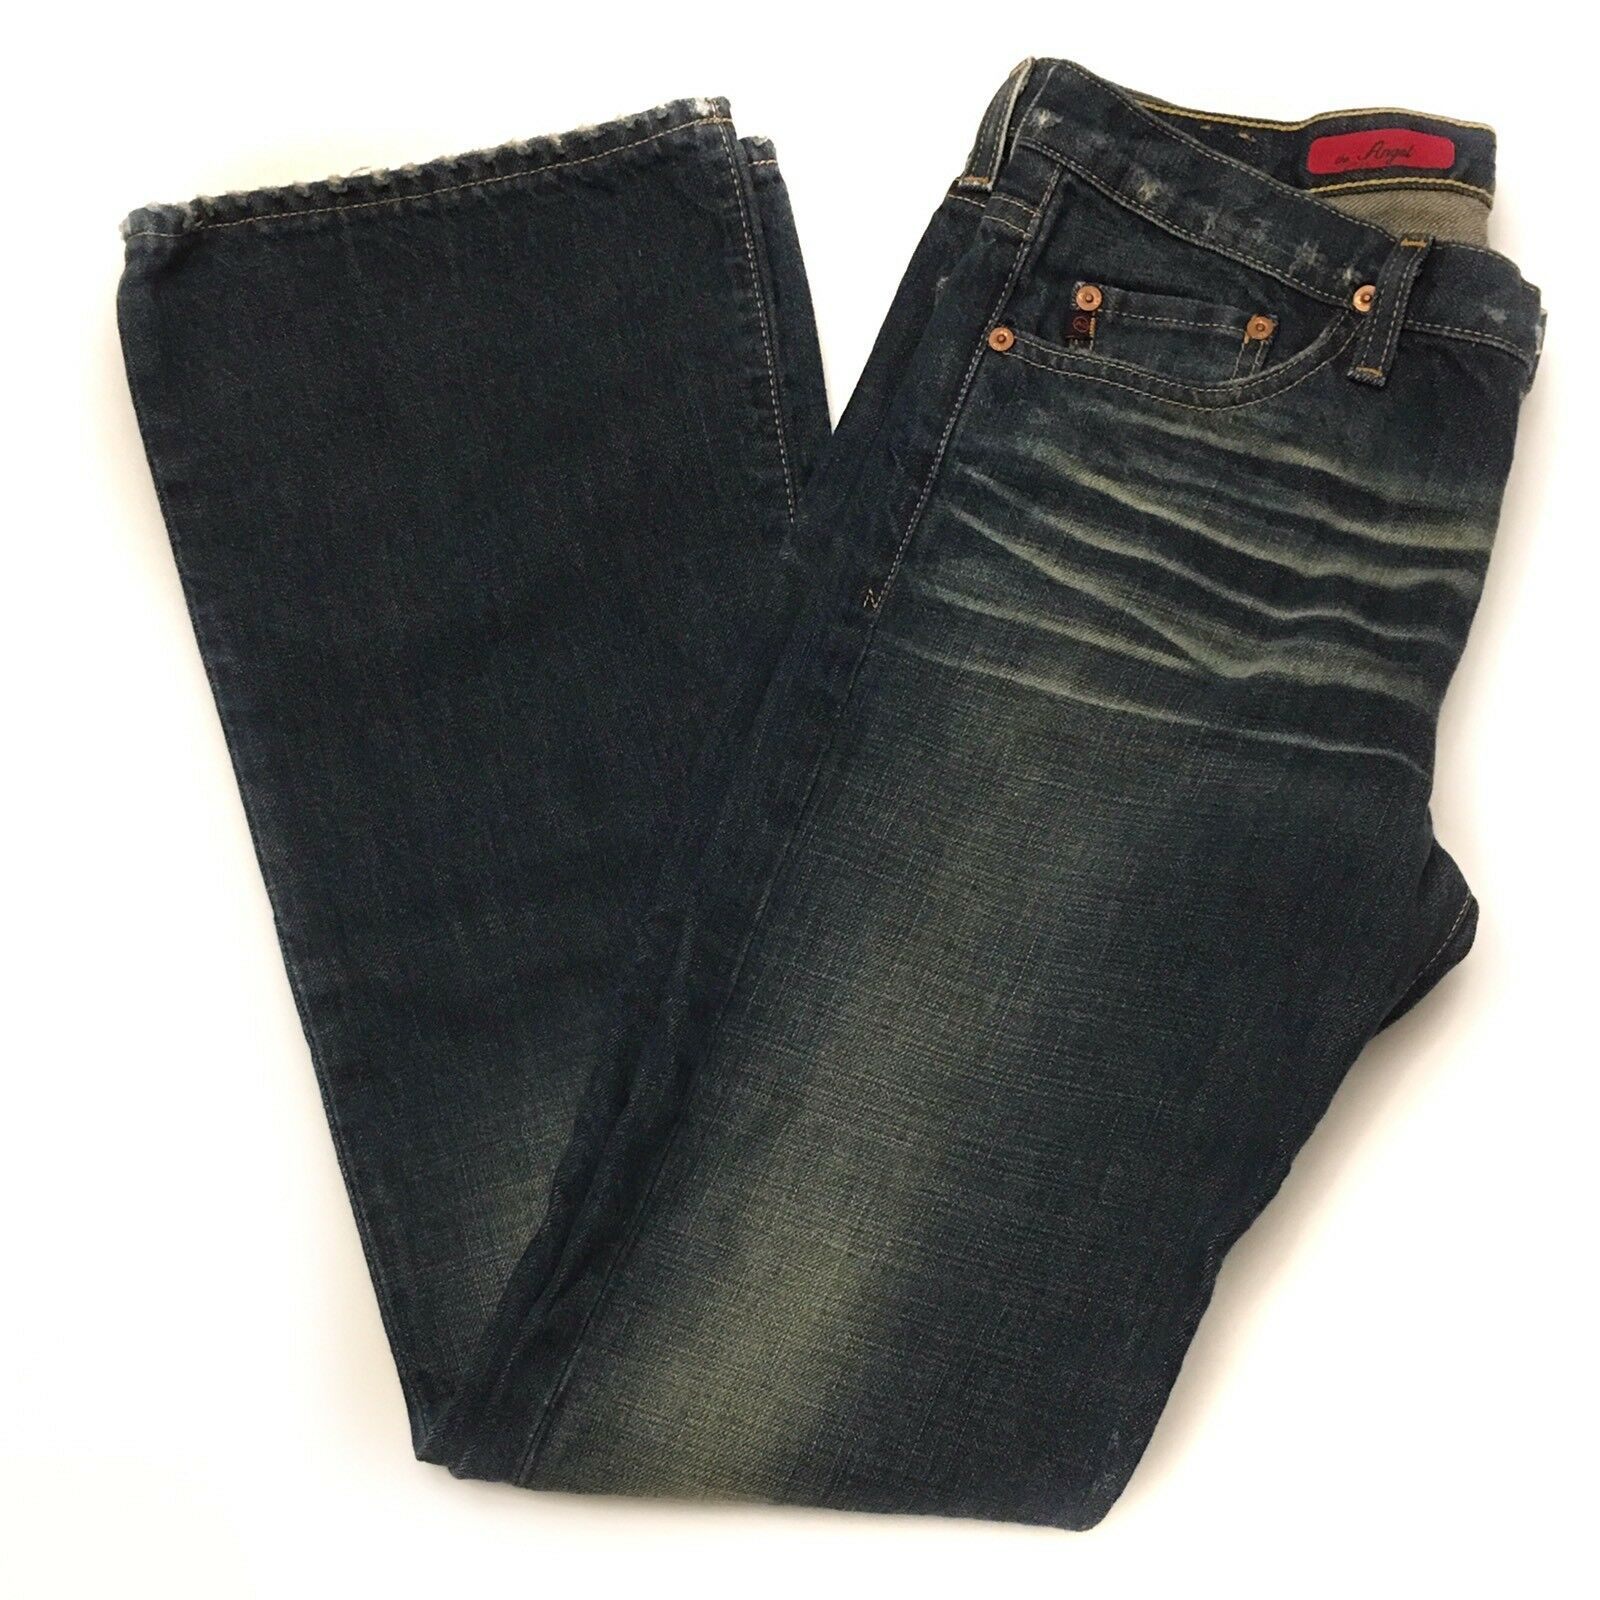 AG Adriano goldschmied Womens Jeans Size 29 Bootcut bluee Distressed Whiskering